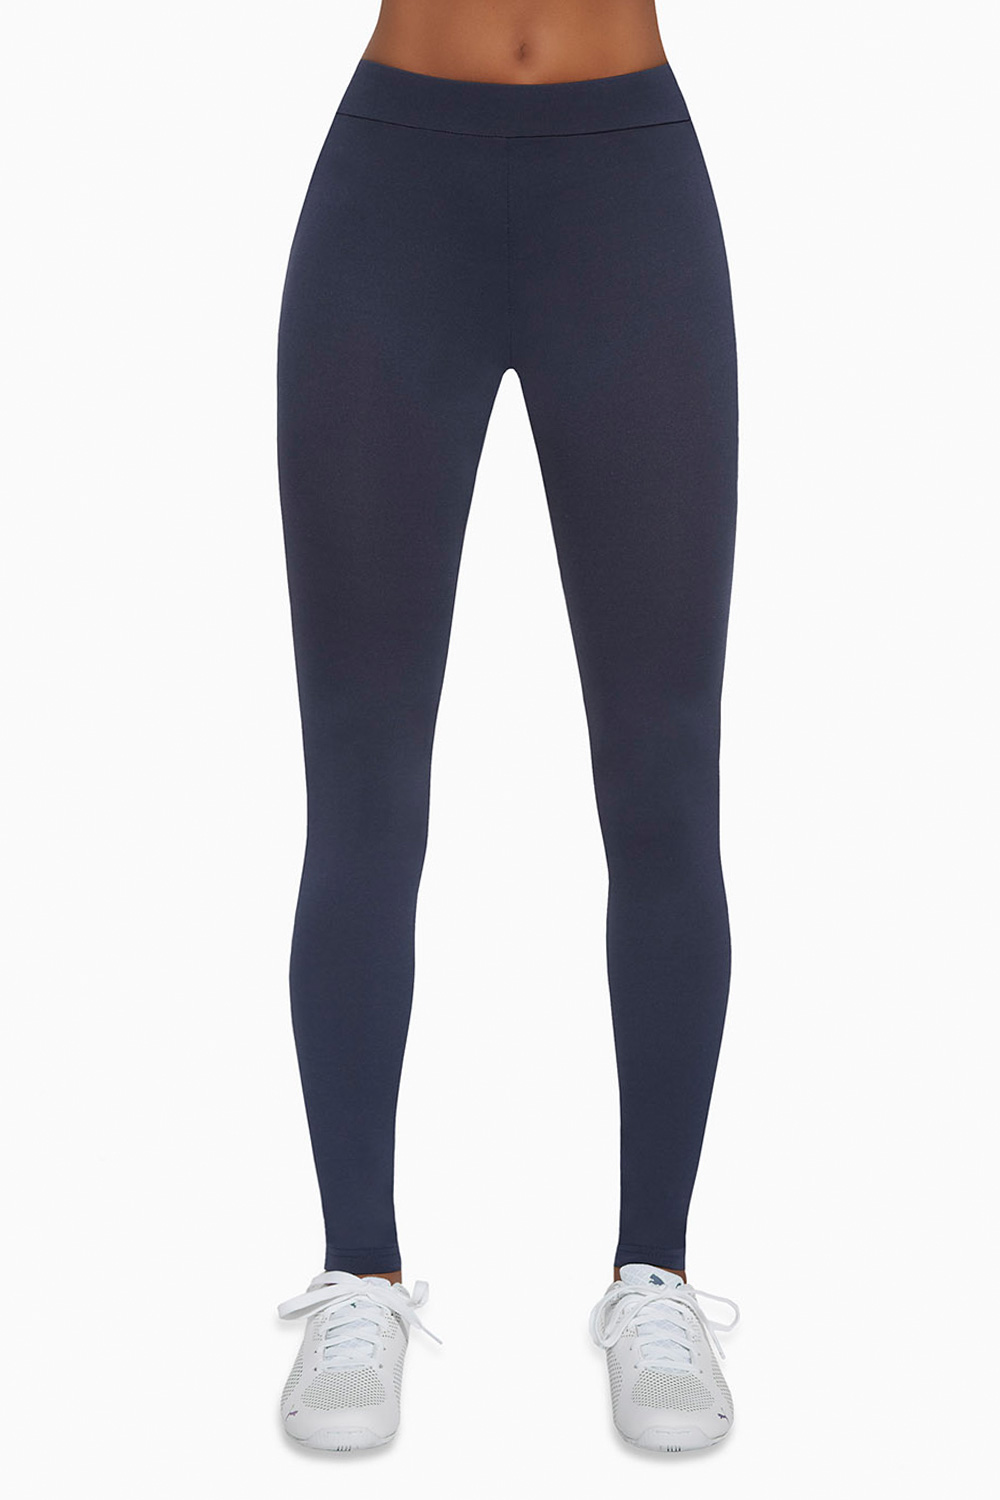 Imagin női sport leggings